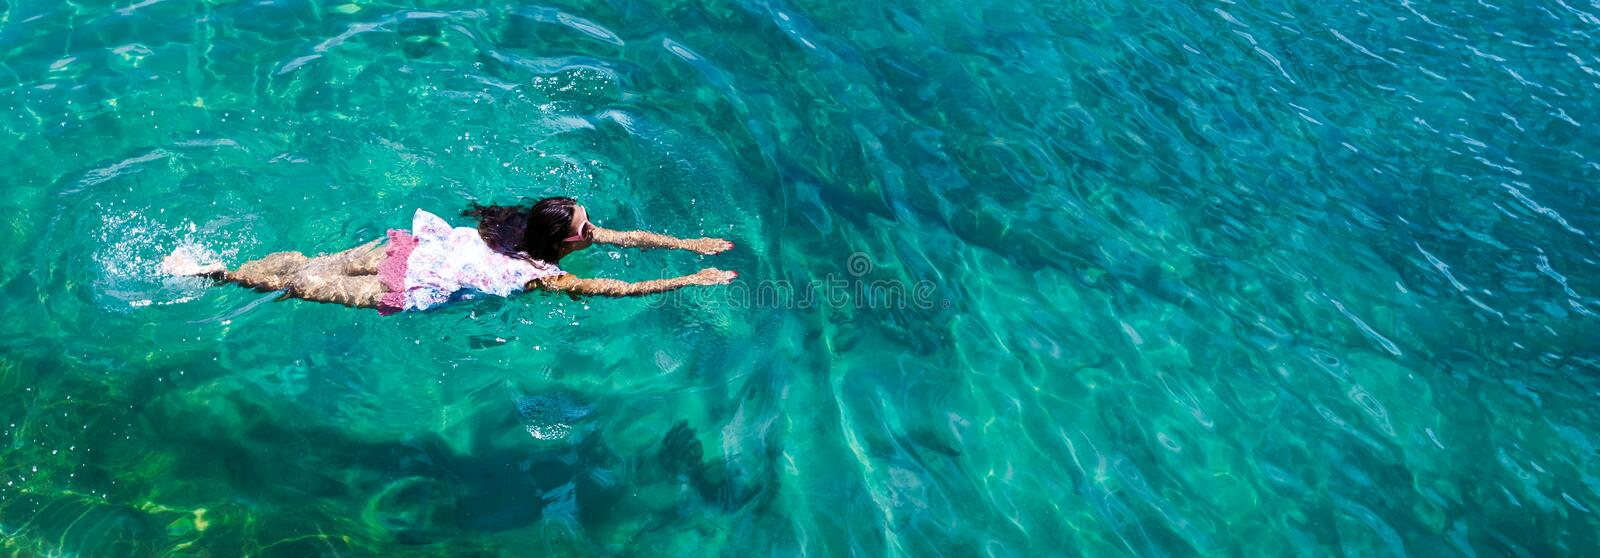 Aerial view of a woman in the sea royalty free stock image